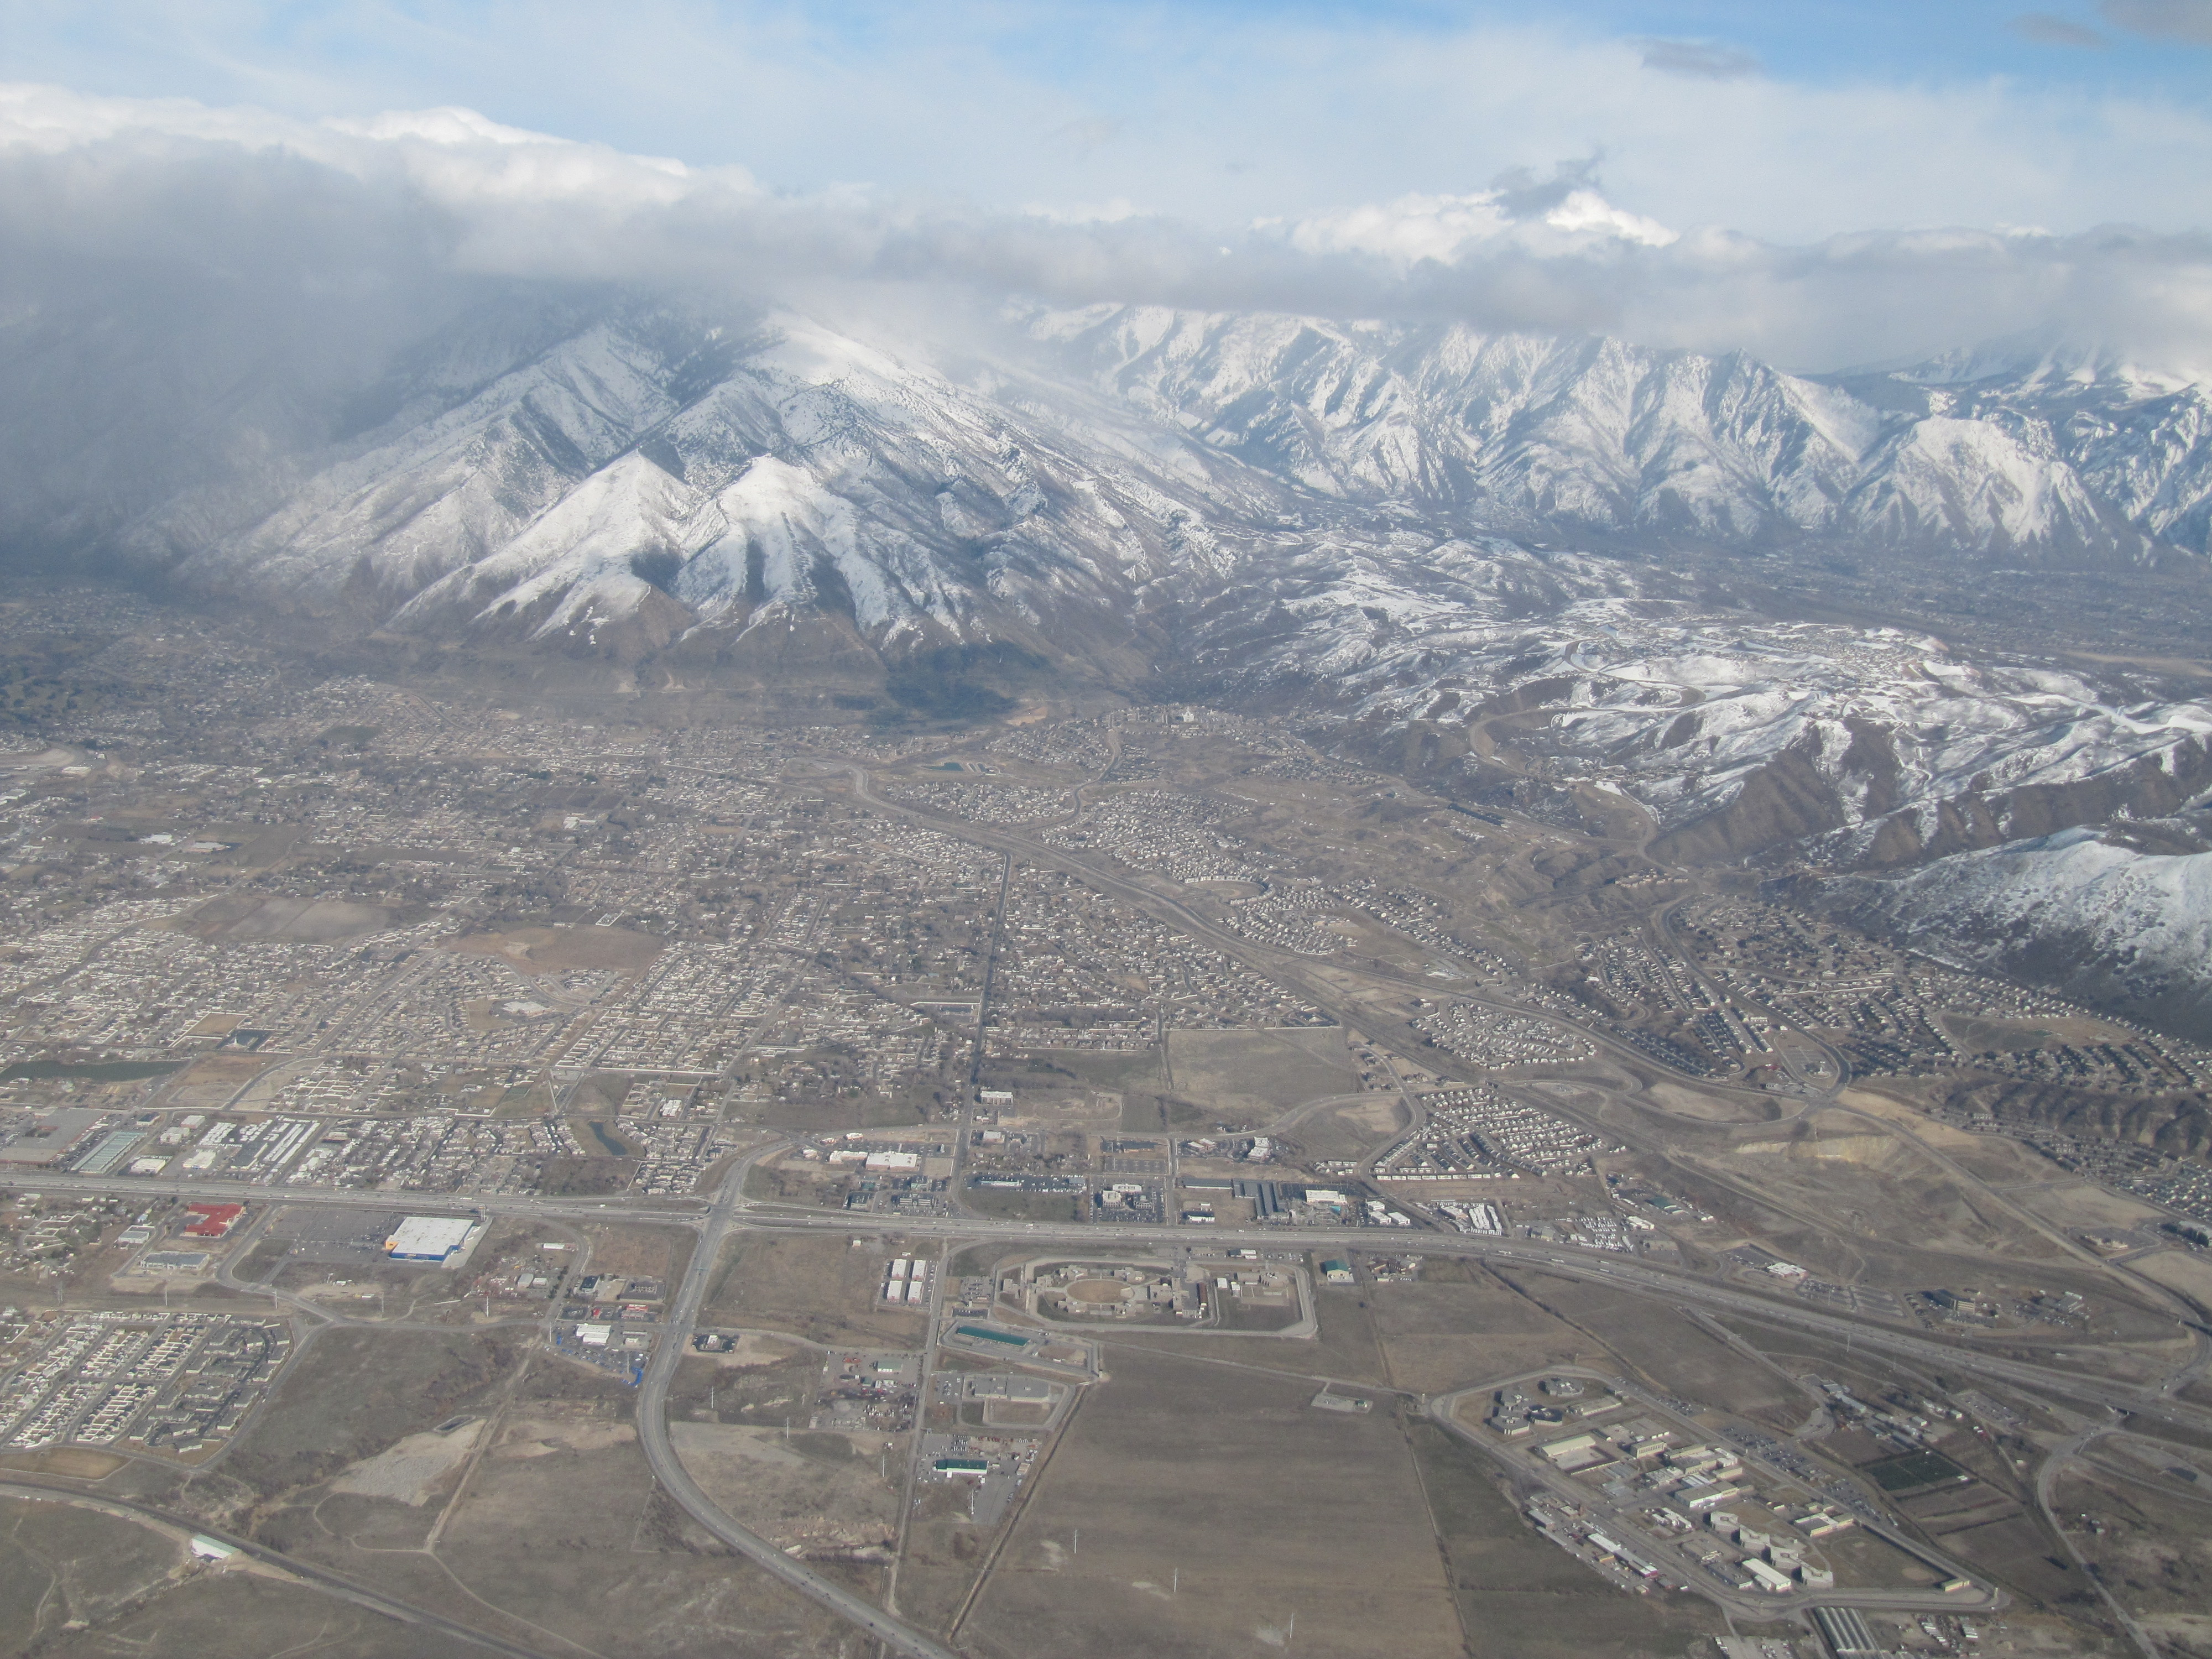 Salt Lake valley from the air